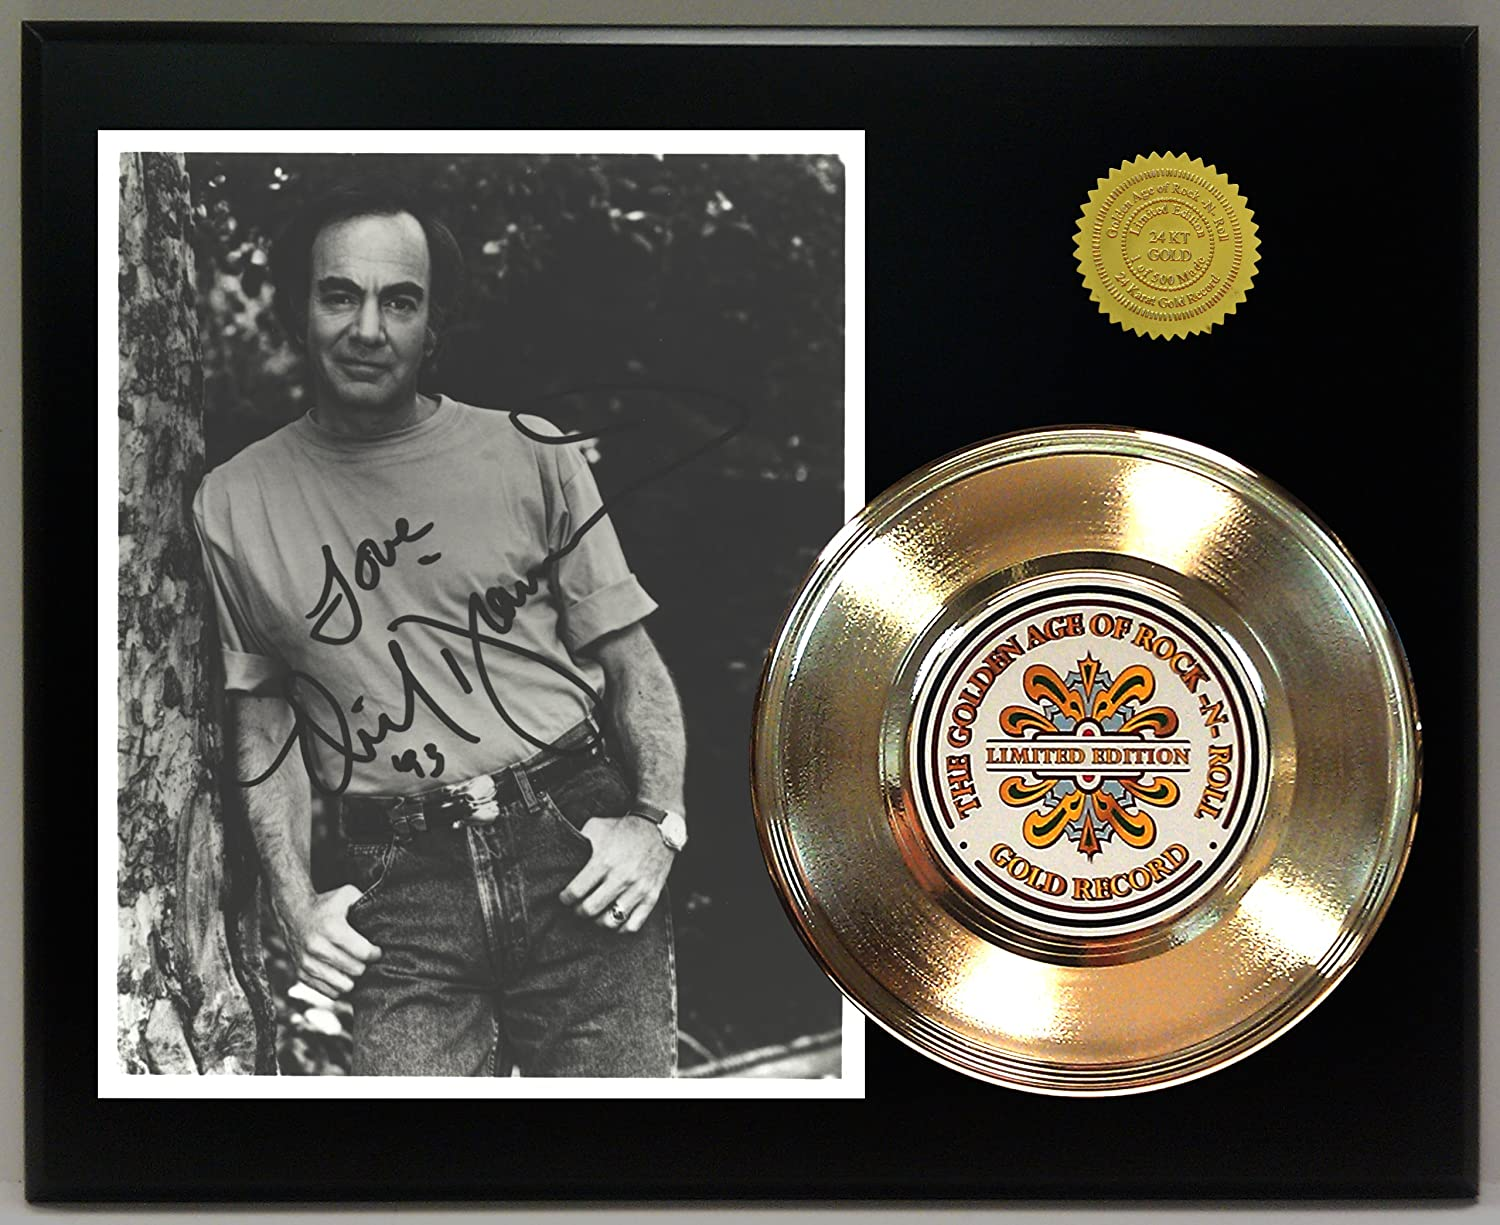 Neil Diamond Gold Record Signature Series LTD Edition Display Gold Record Outlet